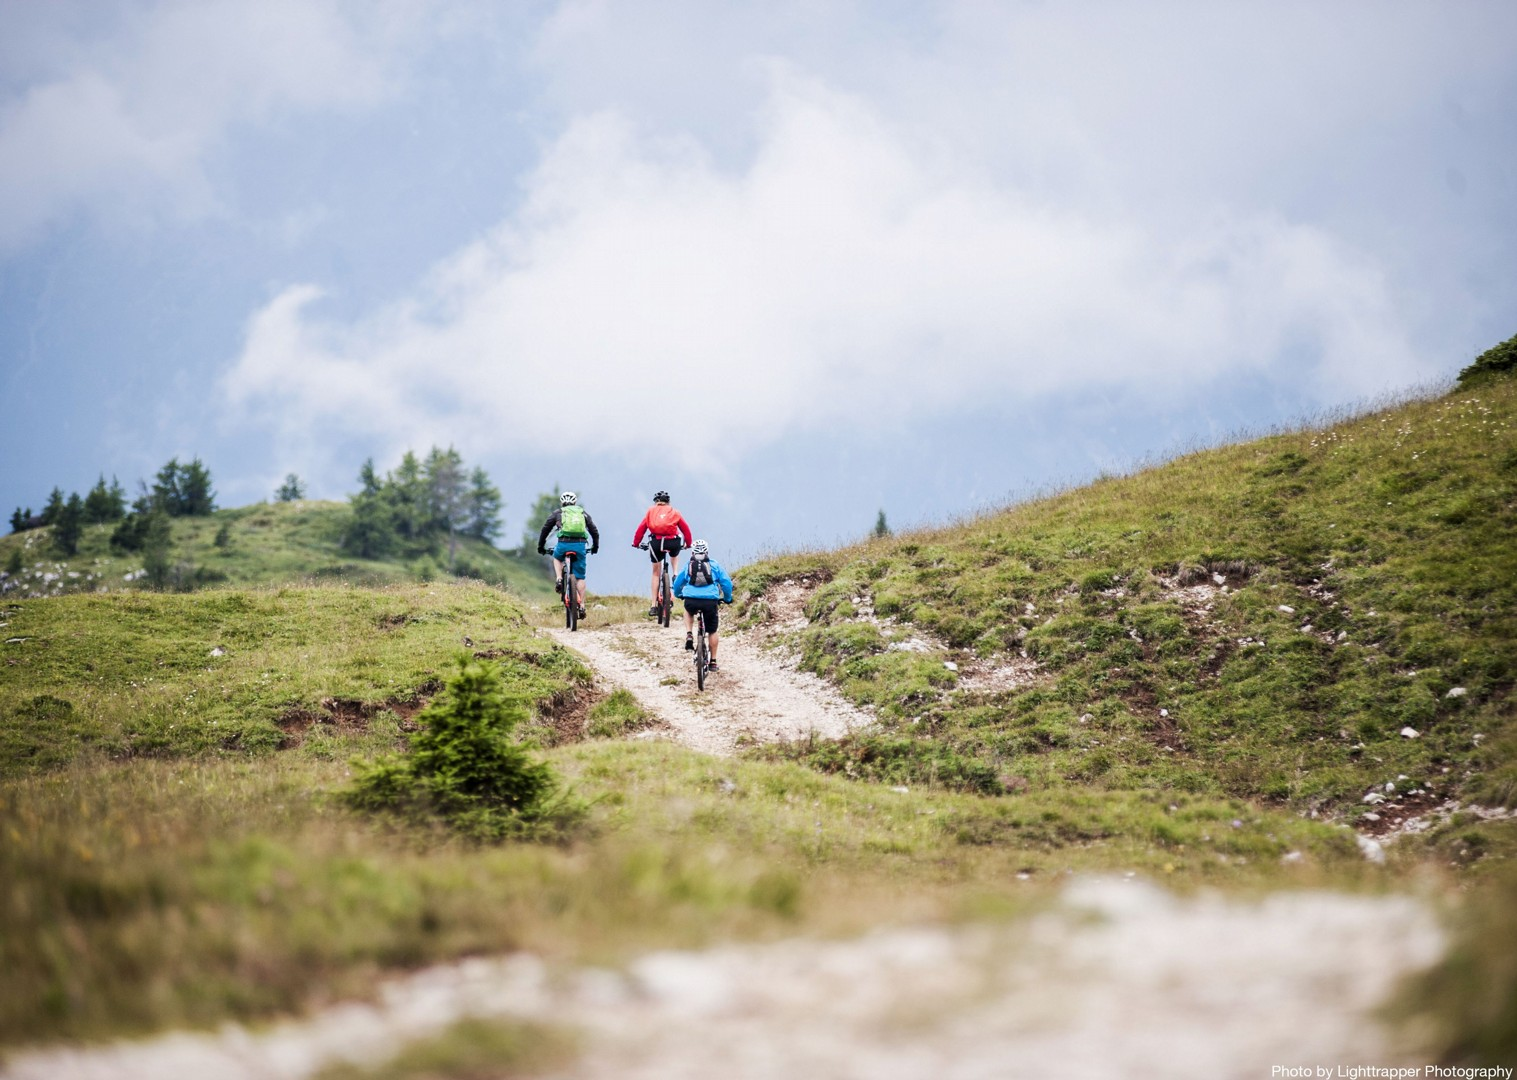 haute-savoy-mountain-bike-holiday-in-the-alps-alpine-adventure.jpg - Italy and France - Alpine Adventure - Guided Mountain Bike Holiday - Mountain Biking